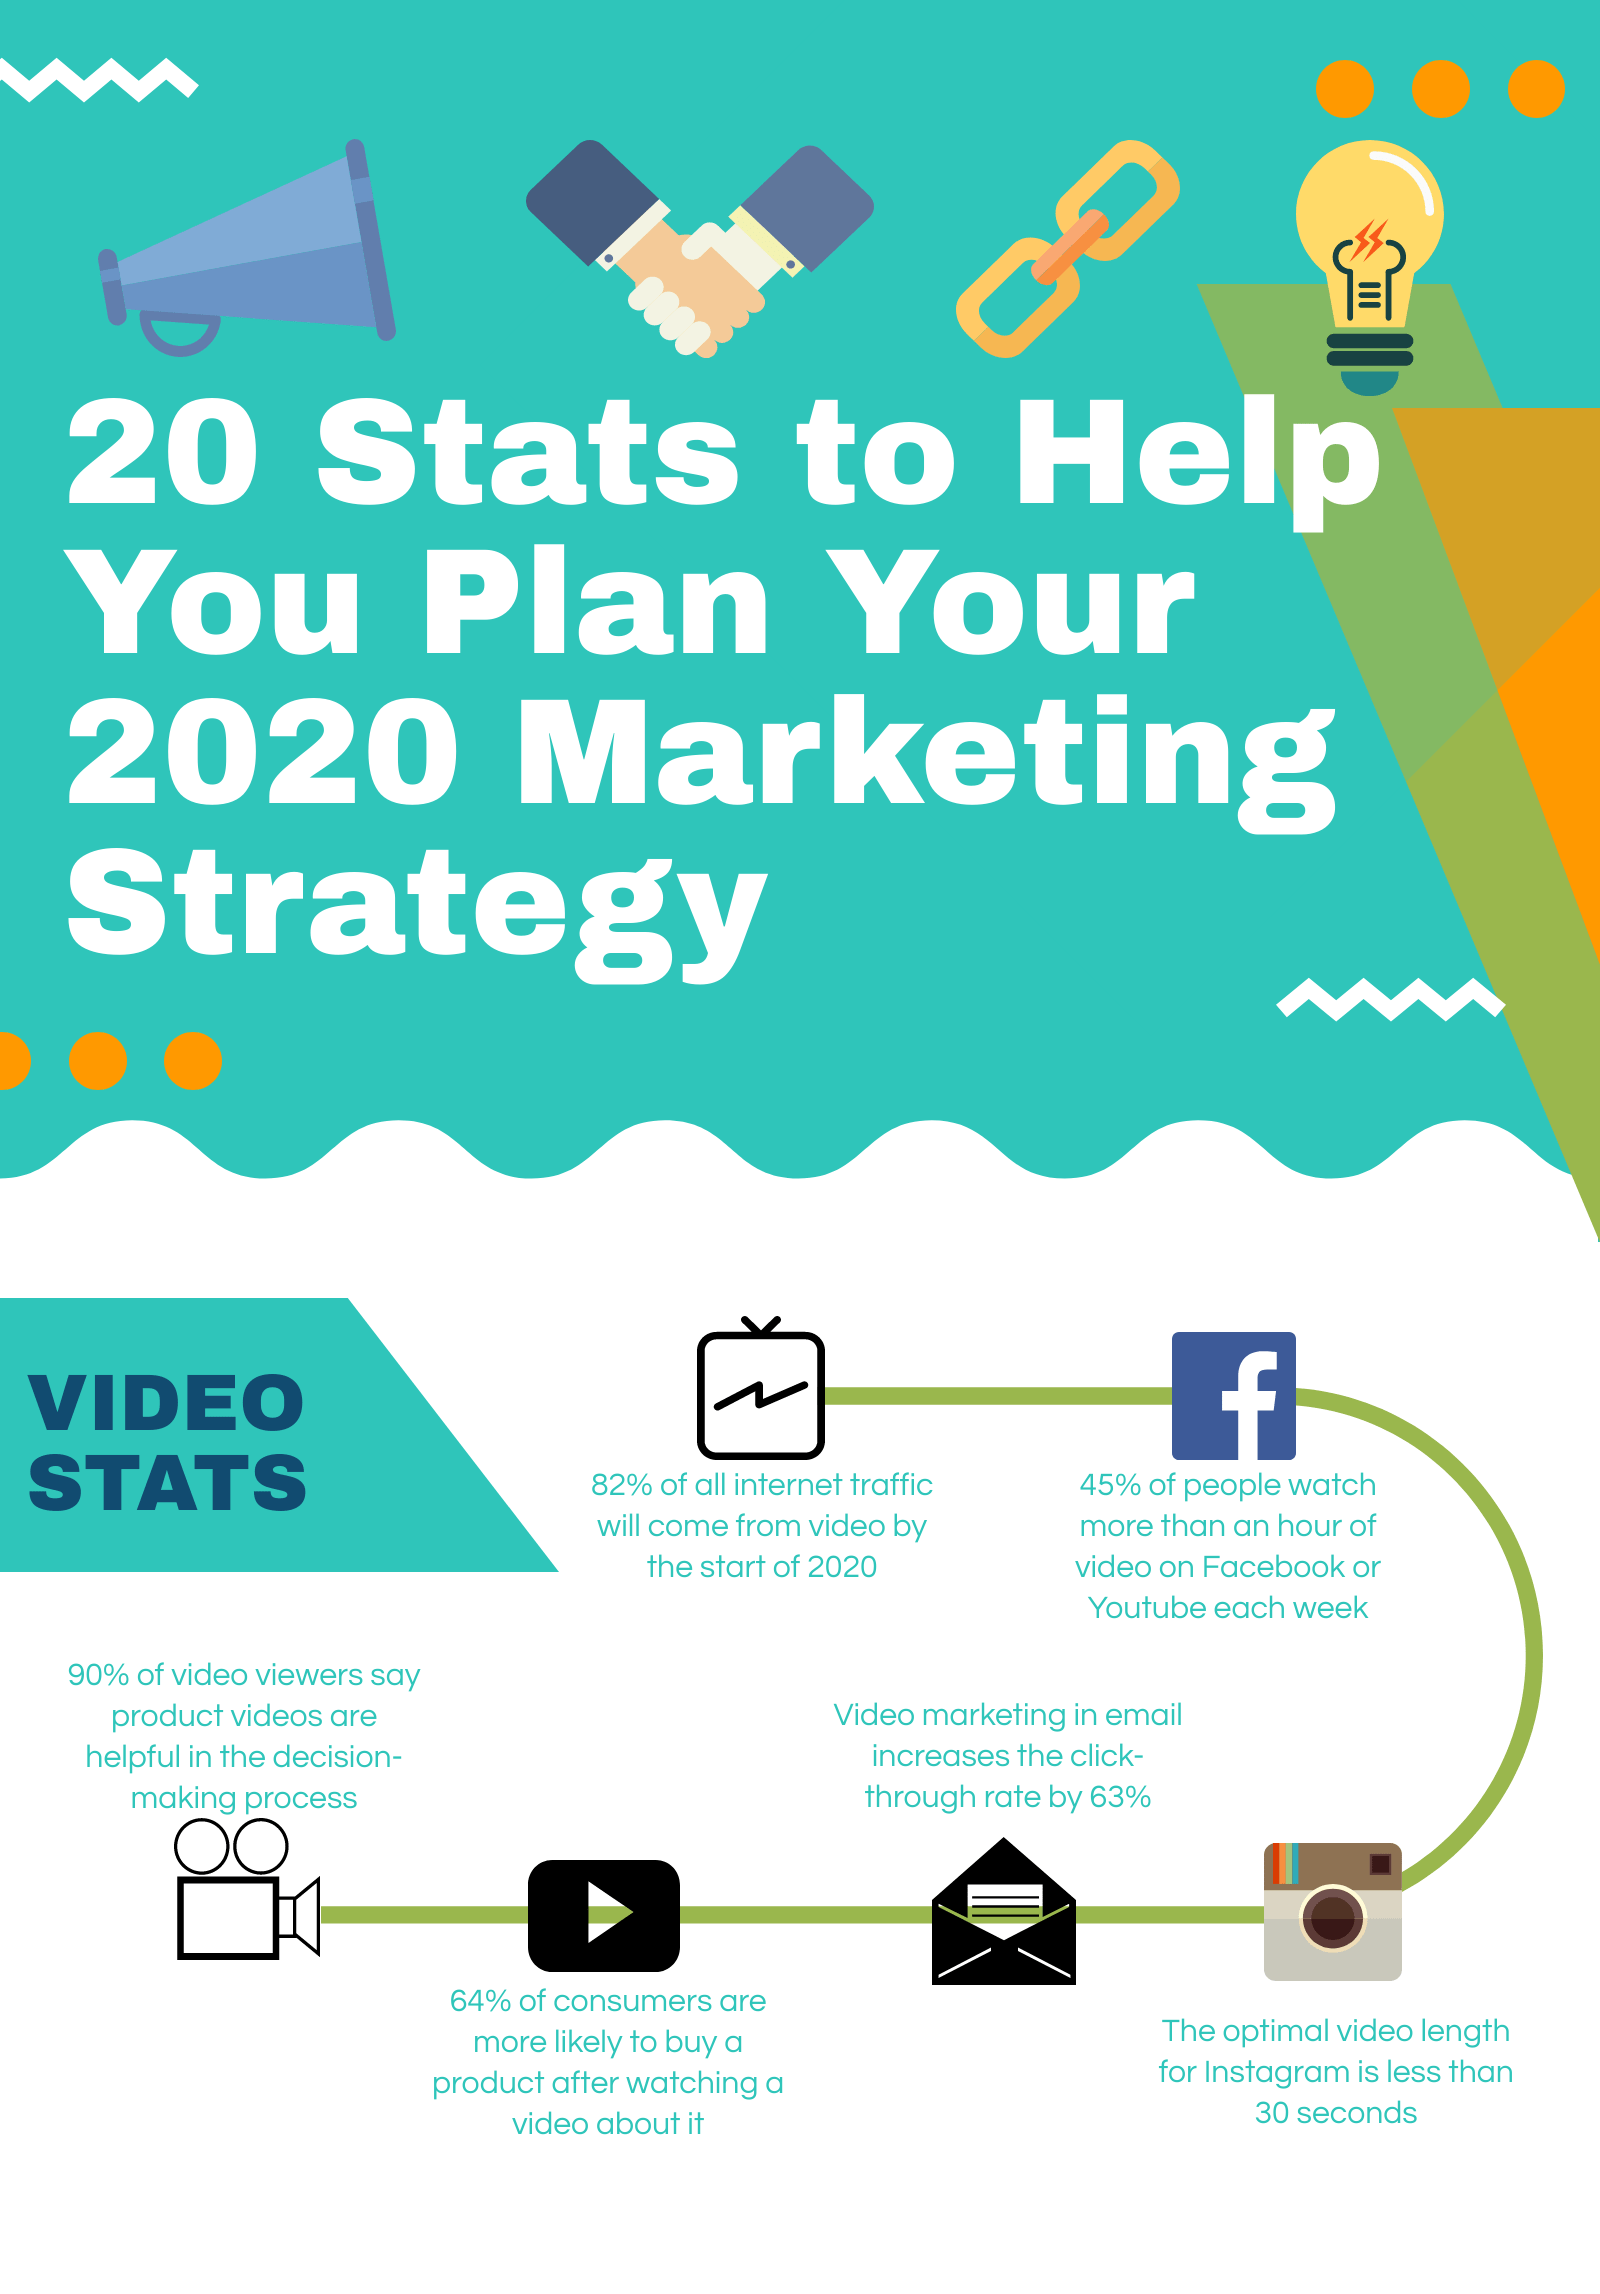 20 Stats to Help You Plan Your 2020 Marketing Strategy Infographic Image